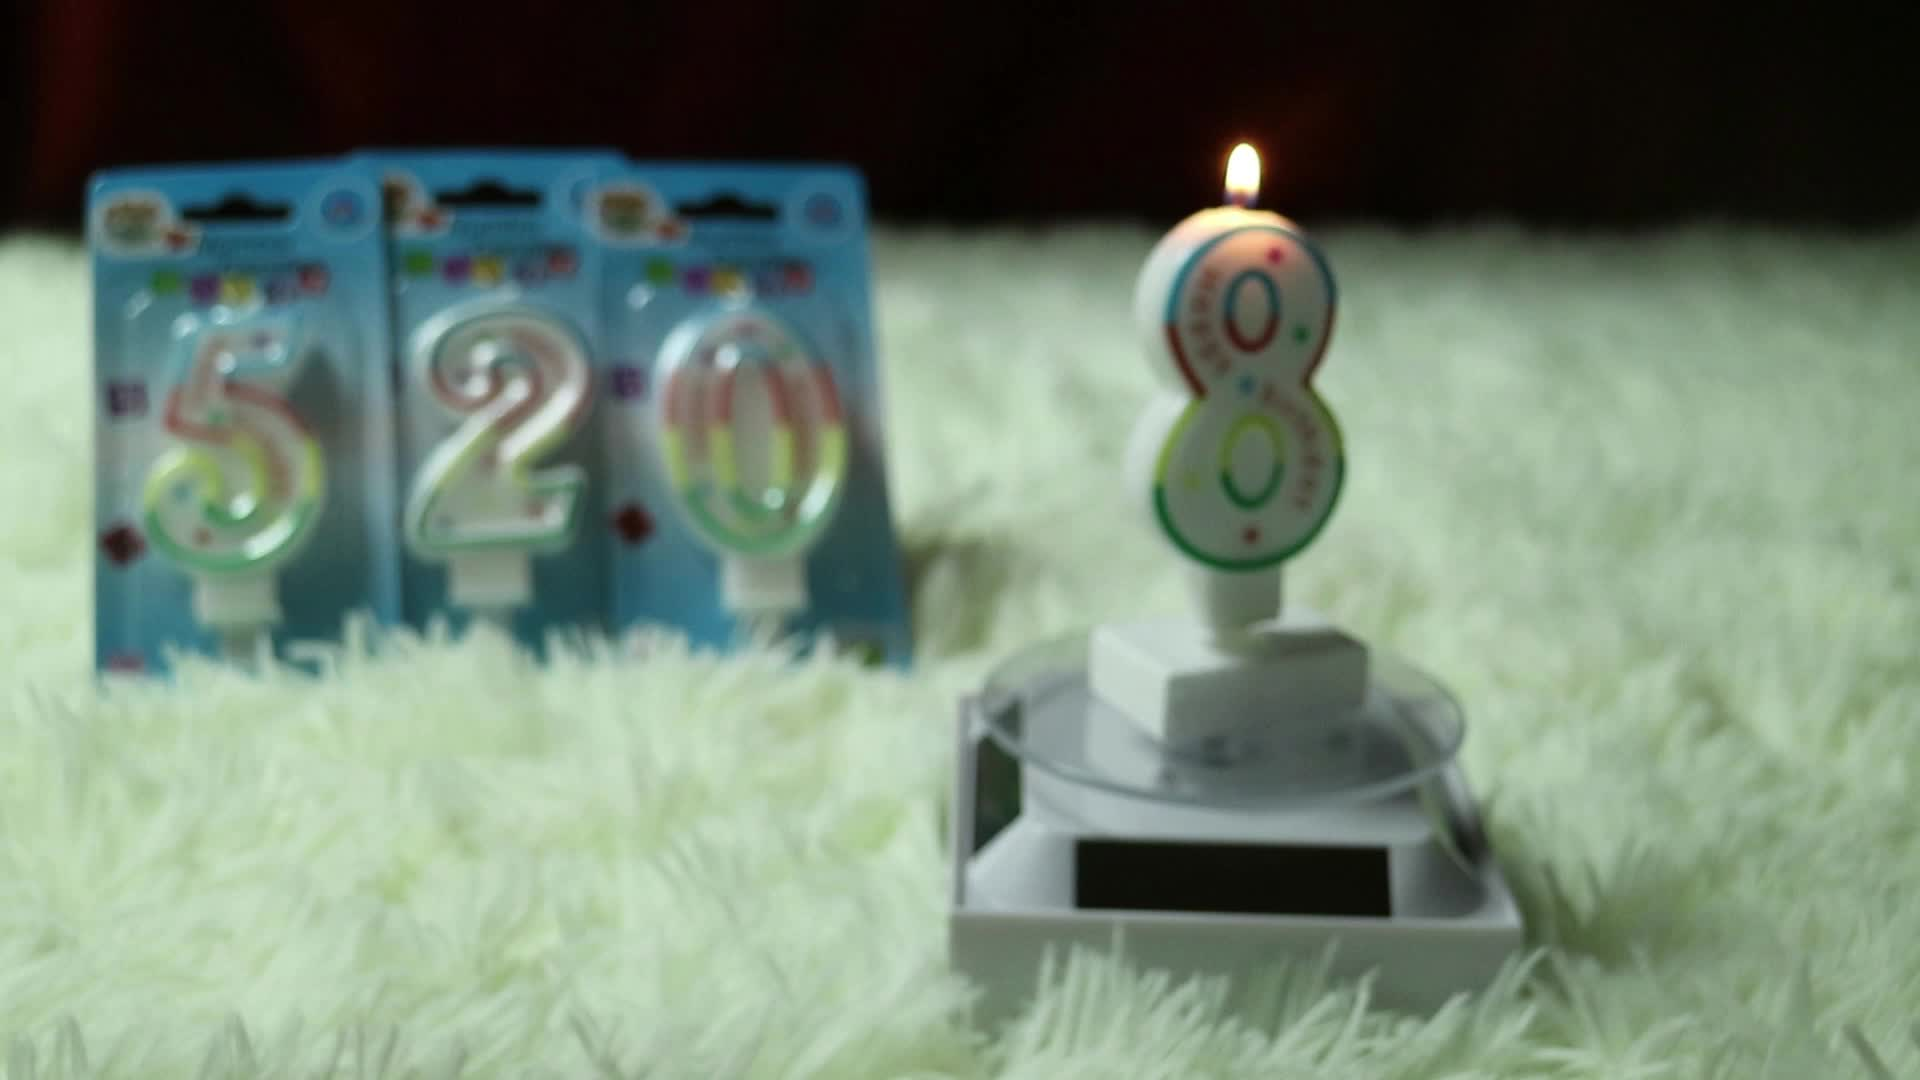 Magic creative kids number birthday candle for party decoration